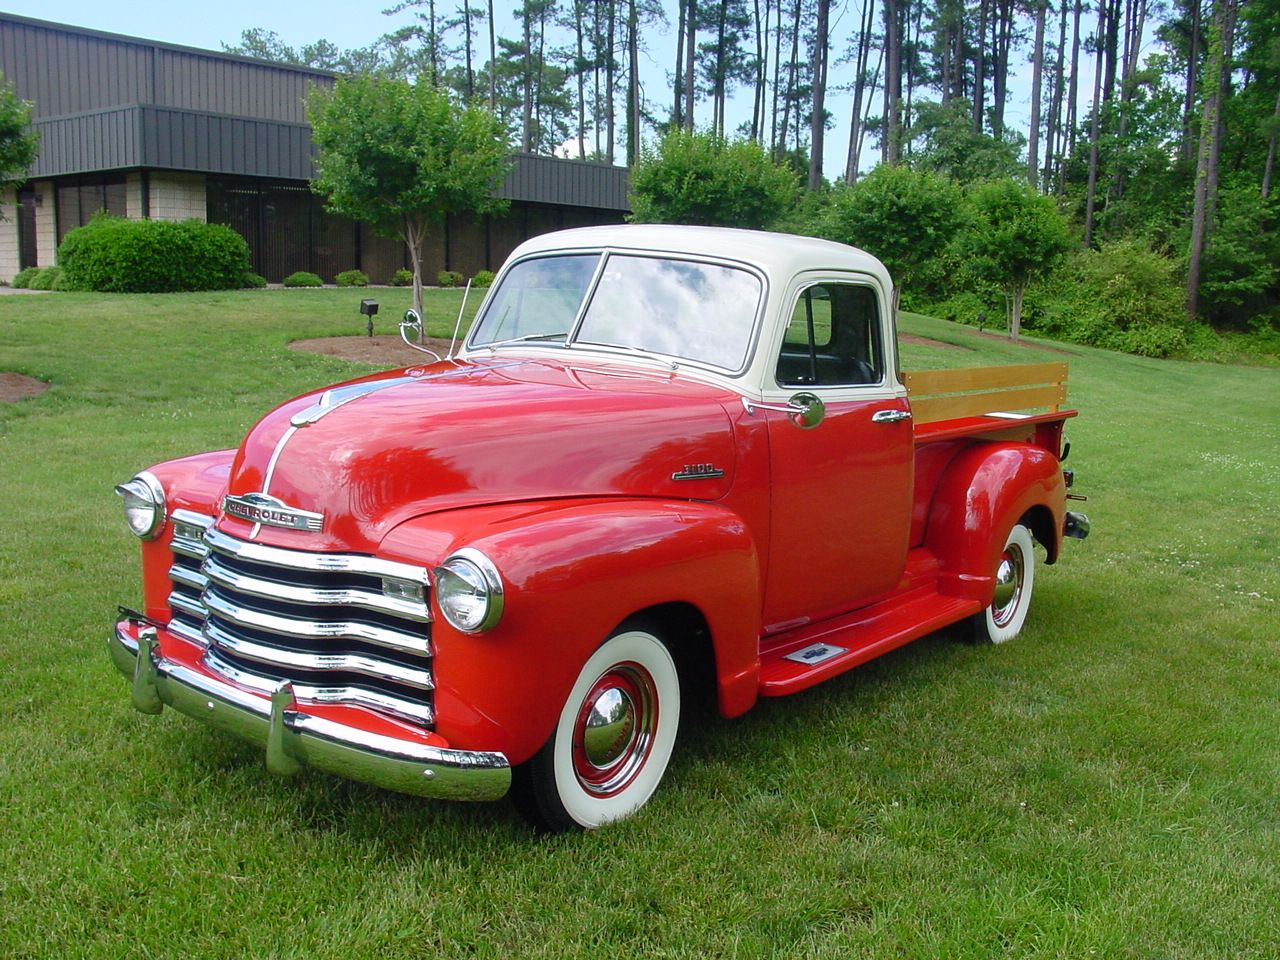 1953 Chevrolet Pickup | Antique Trucks | Pinterest | Chevrolet, Red ...